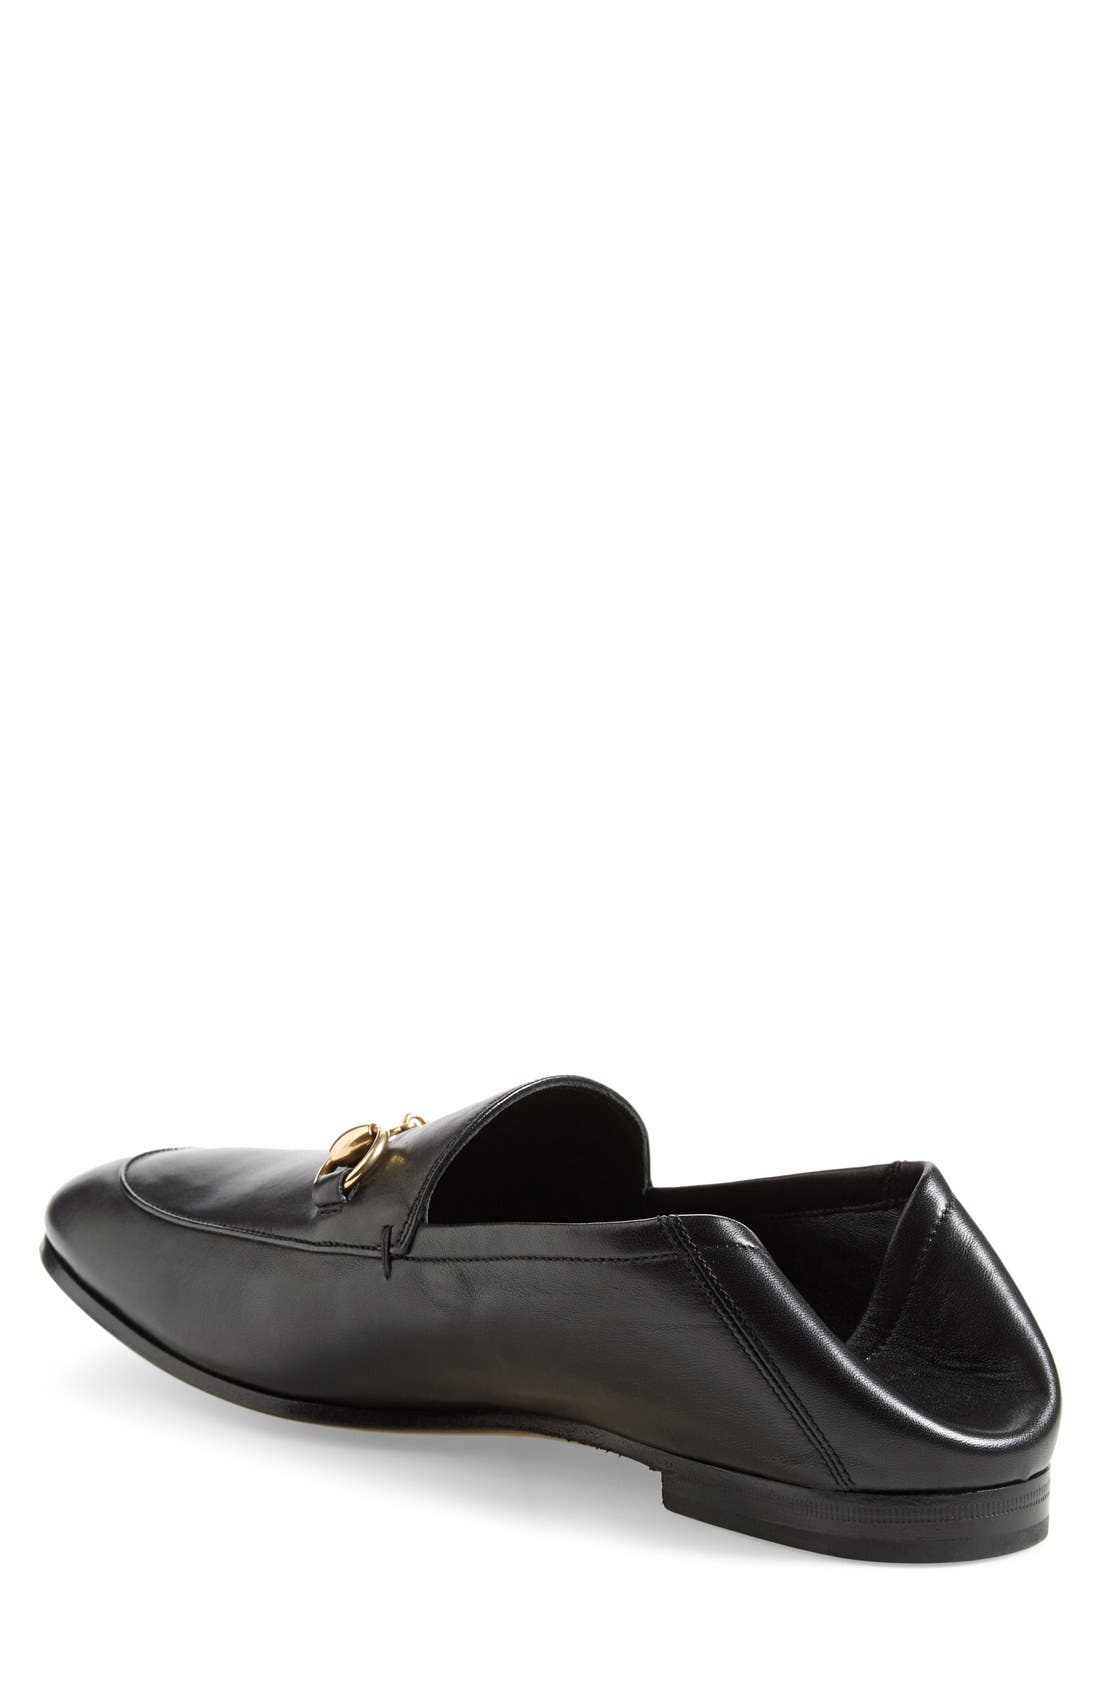 Brixton Leather Loafer,                             Alternate thumbnail 4, color,                             NERO LEATHER